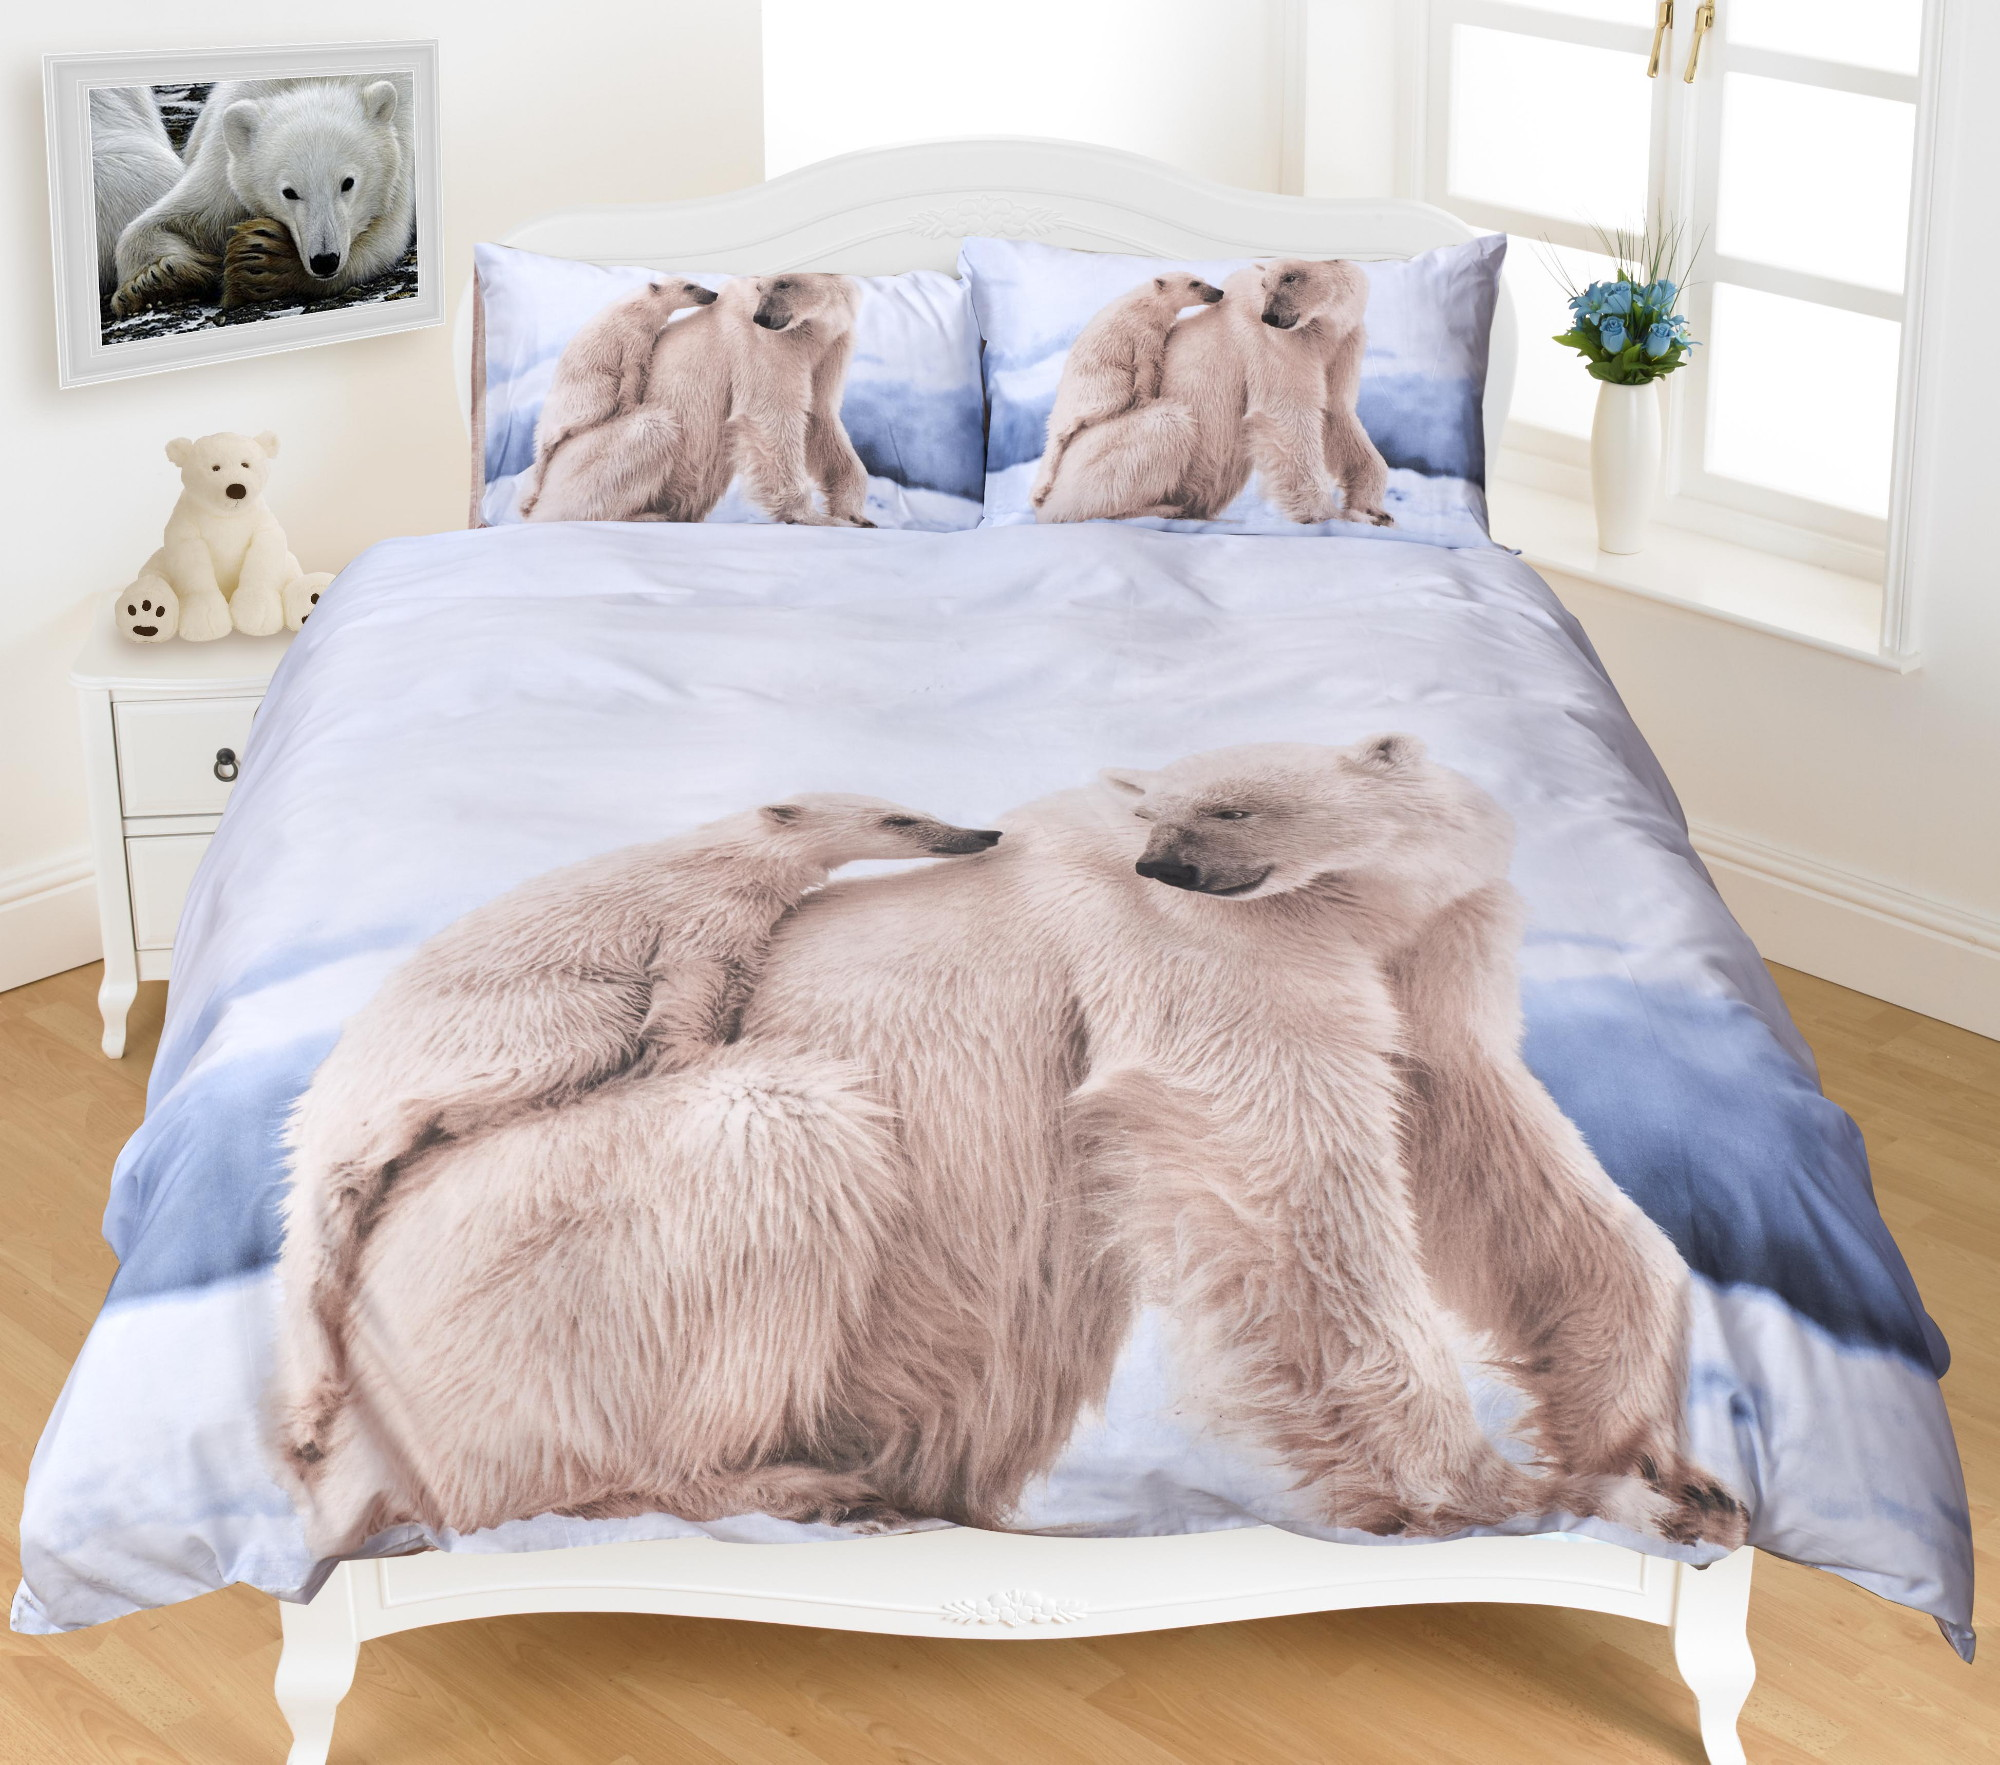 Polar Bear 3D Effect Duvet Cover Bedding Set | eBay